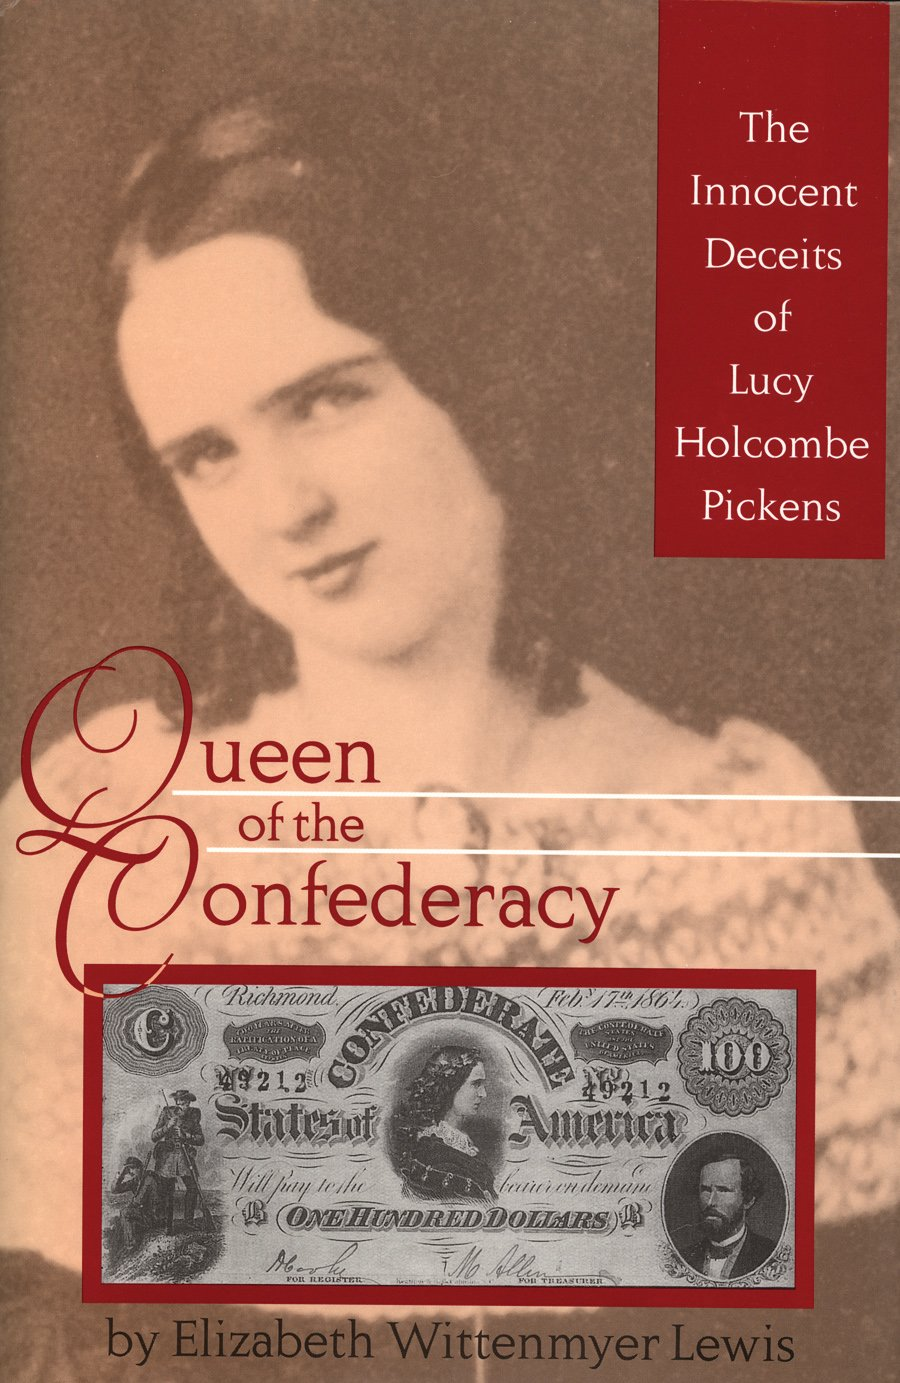 Queen of the Confederacy: The Innocent Deceits of Lucy Holcombe Pickens